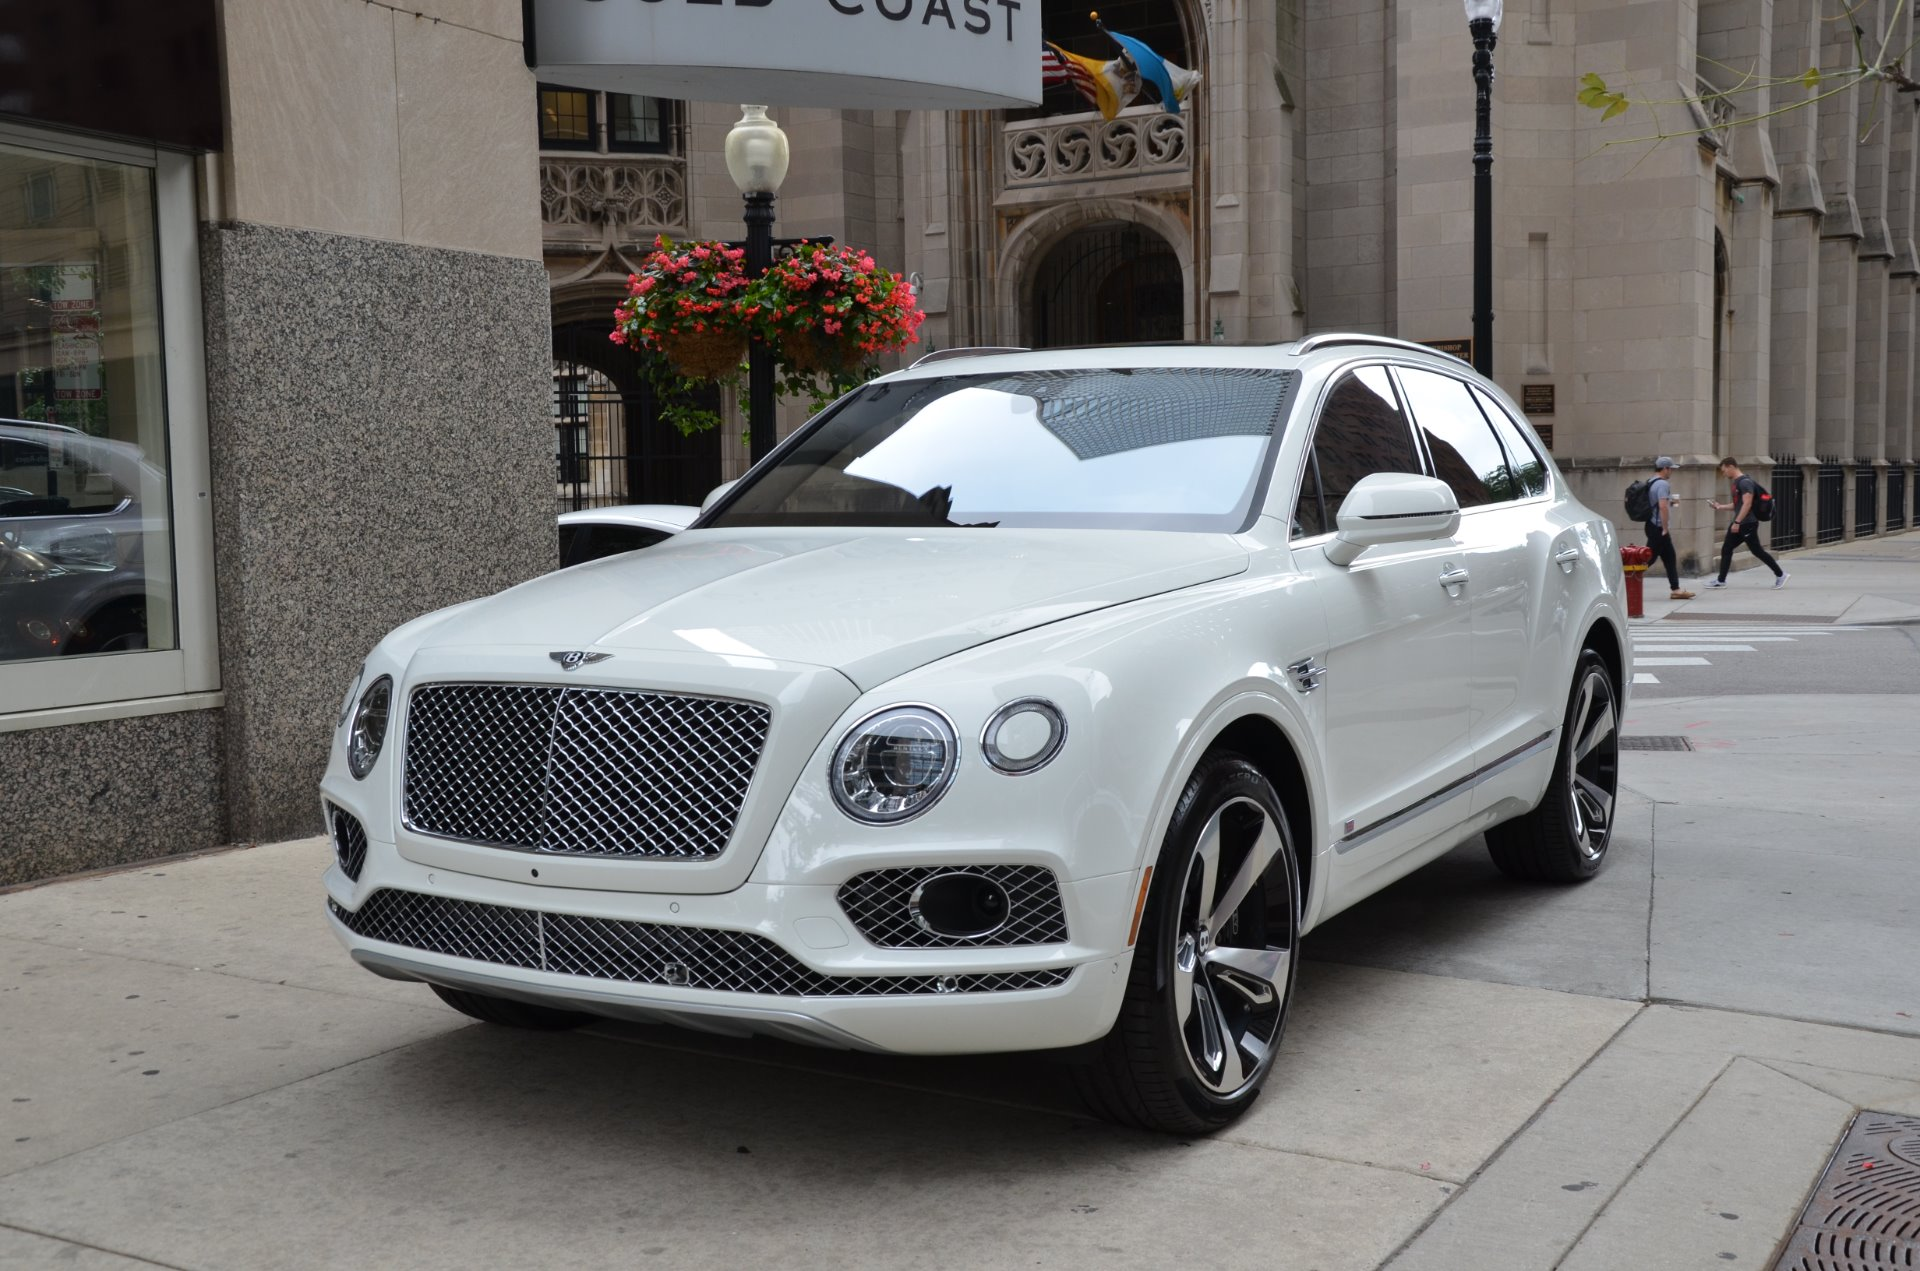 2017 bentley bentayga first edition stock l438a for sale near chicago il il bentley dealer. Black Bedroom Furniture Sets. Home Design Ideas